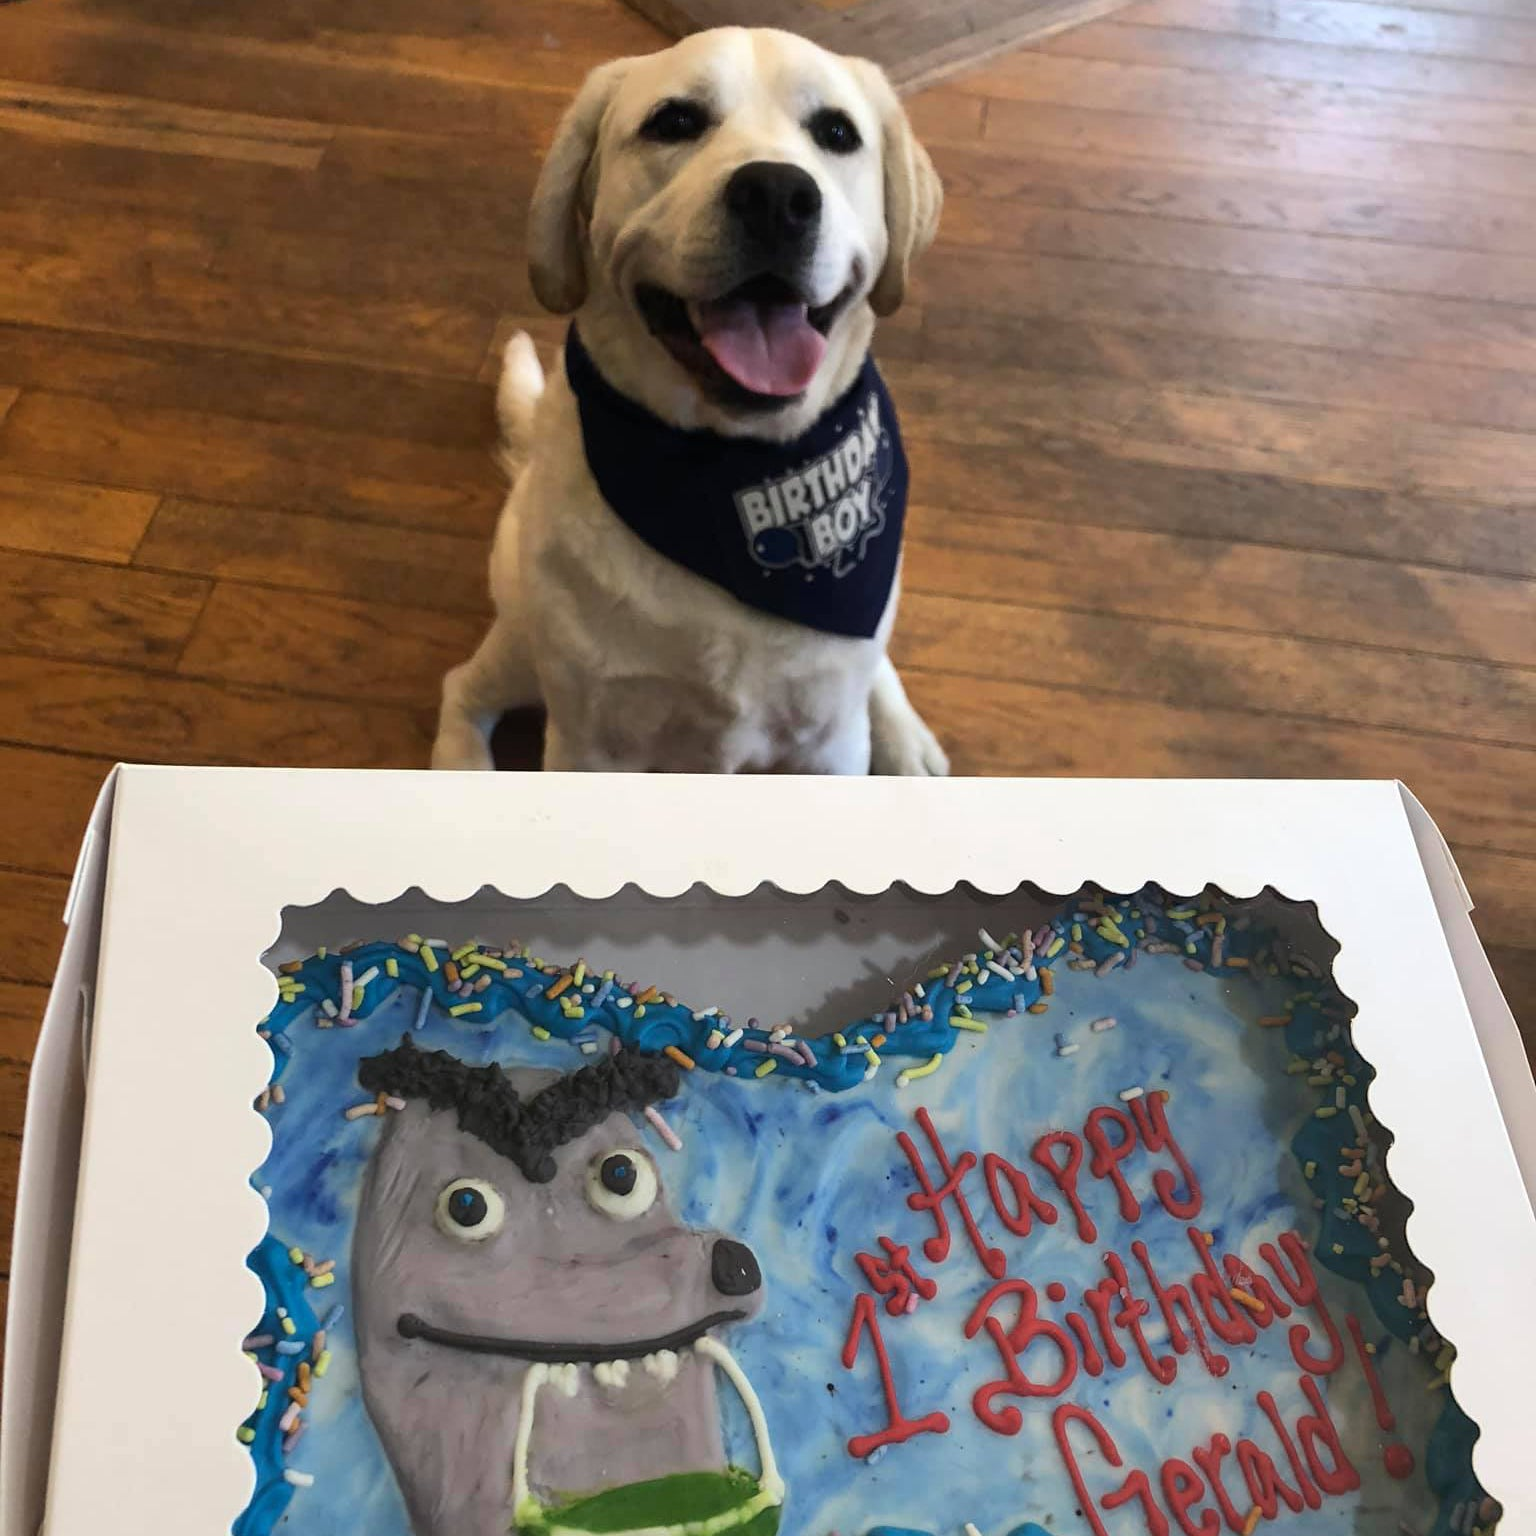 Dog Cakes in Massachusetts